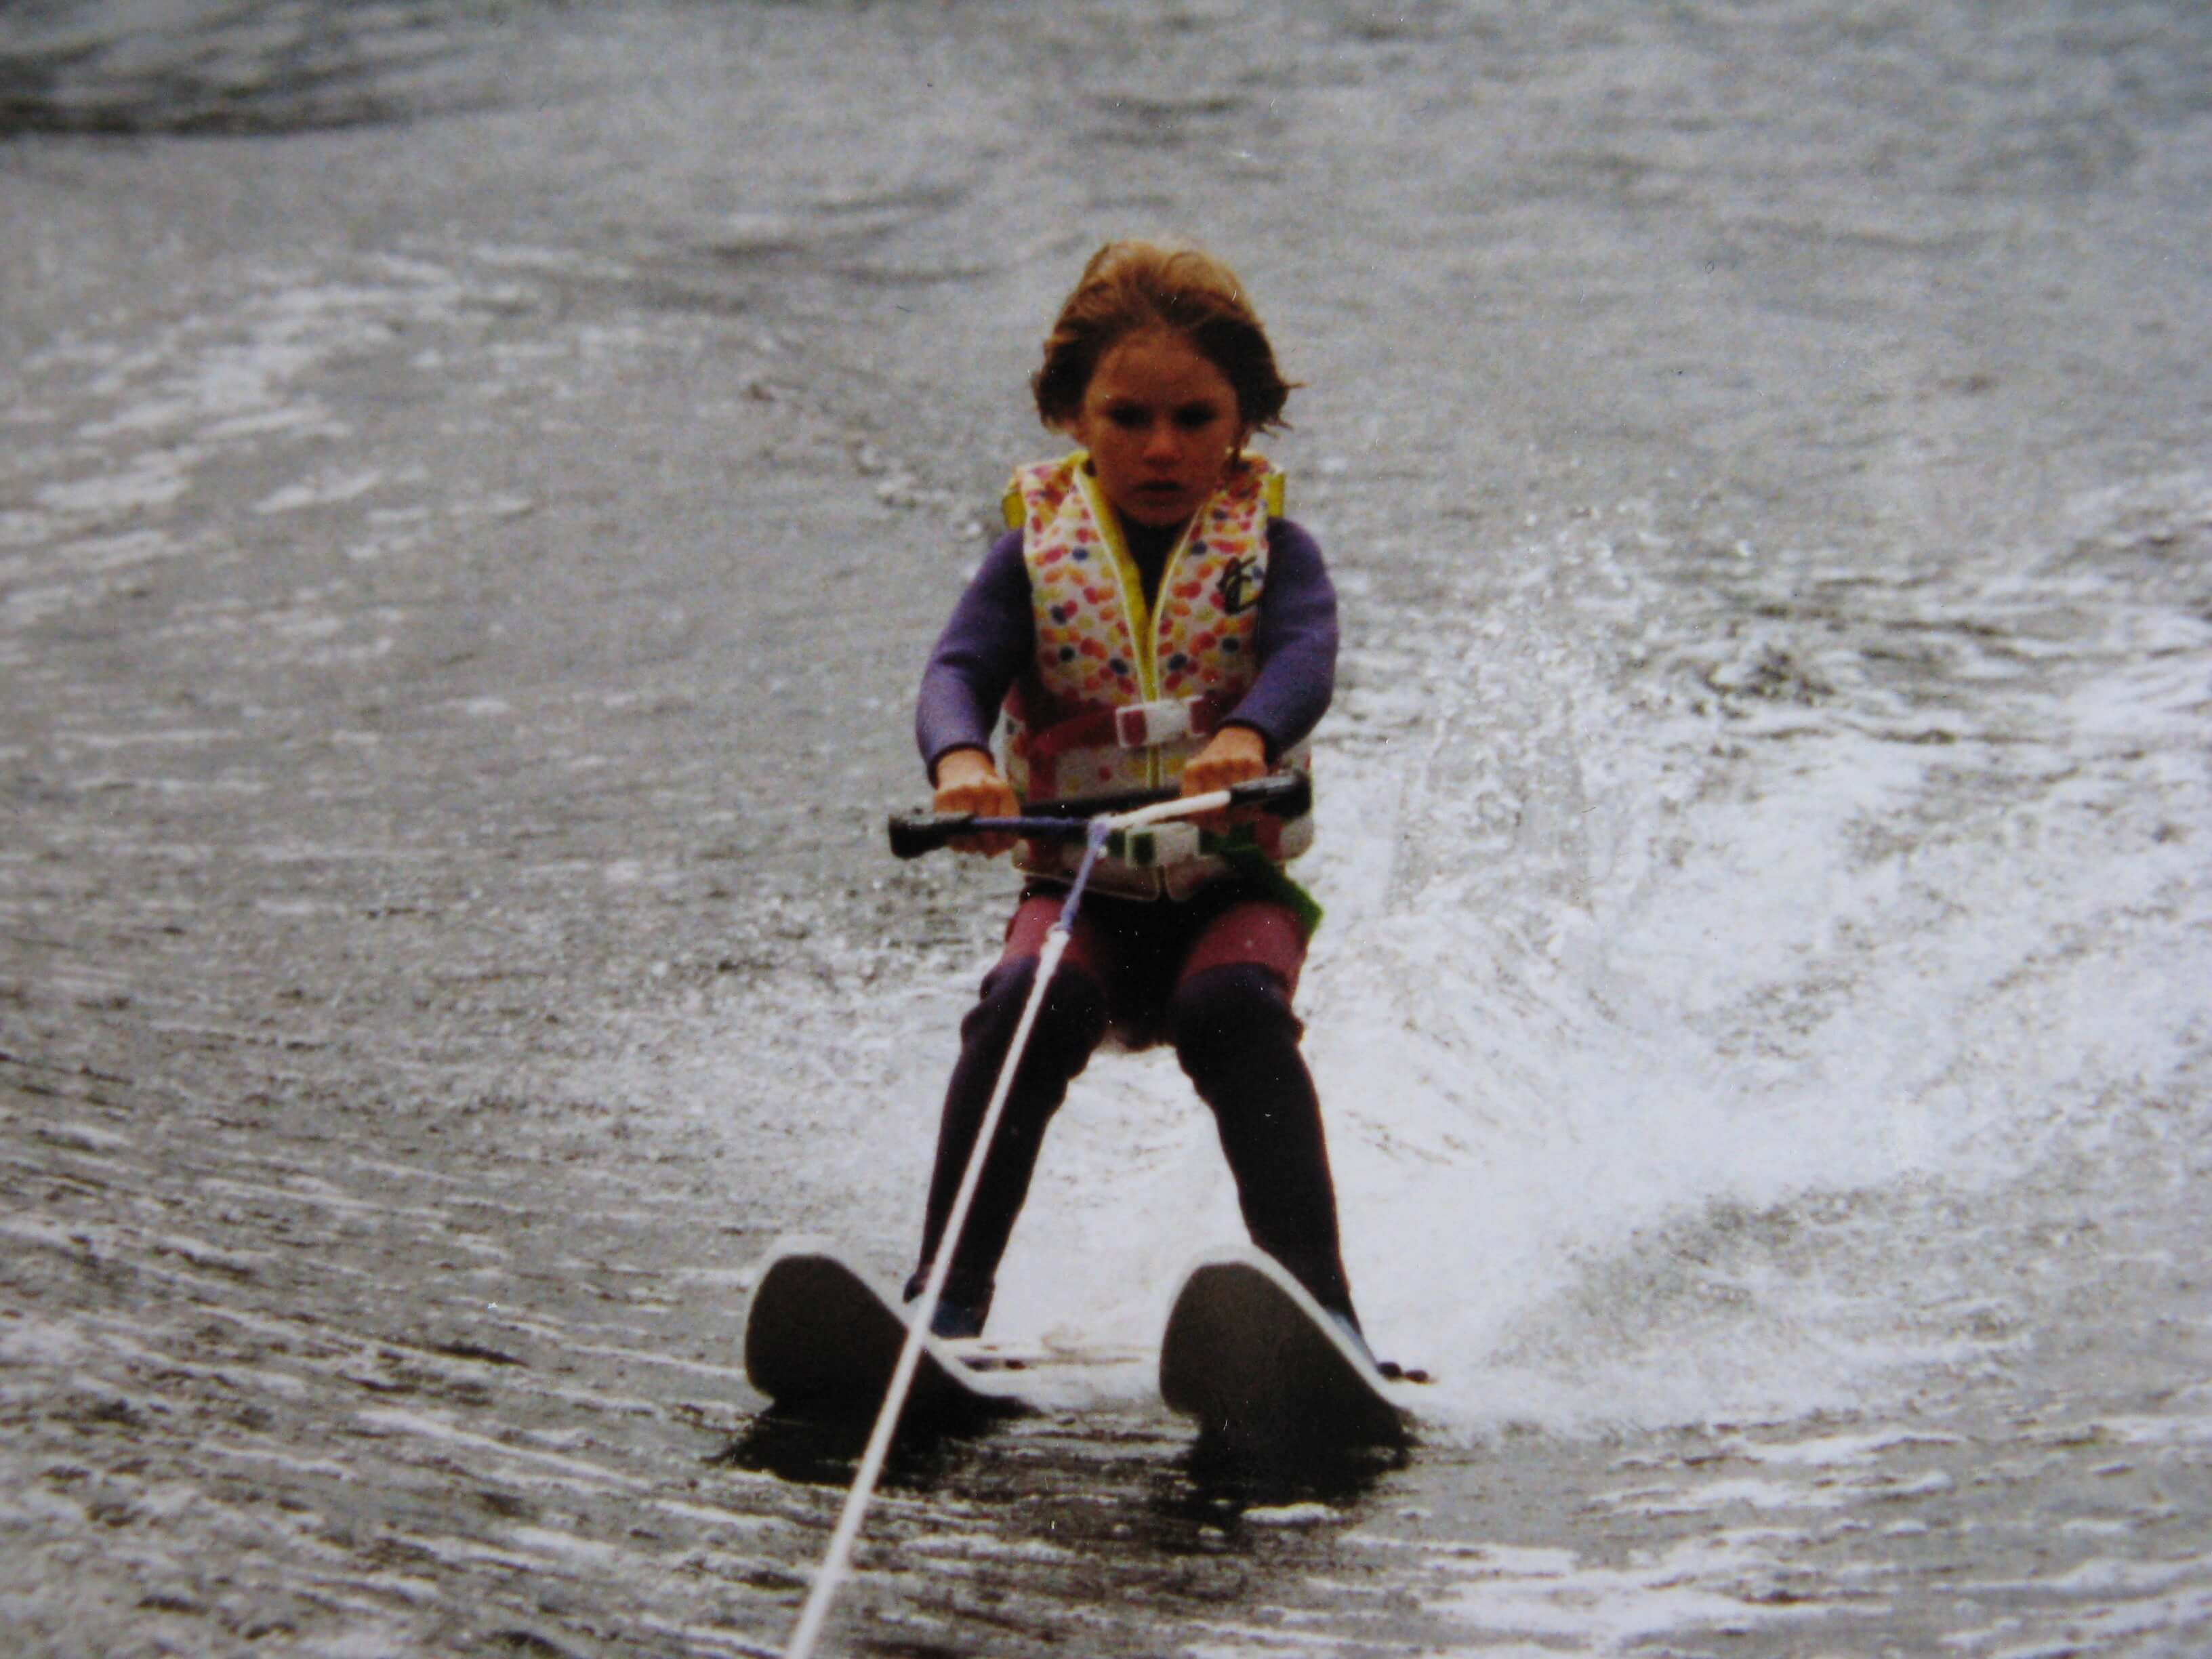 Fairford Water Ski Club Kids skiing